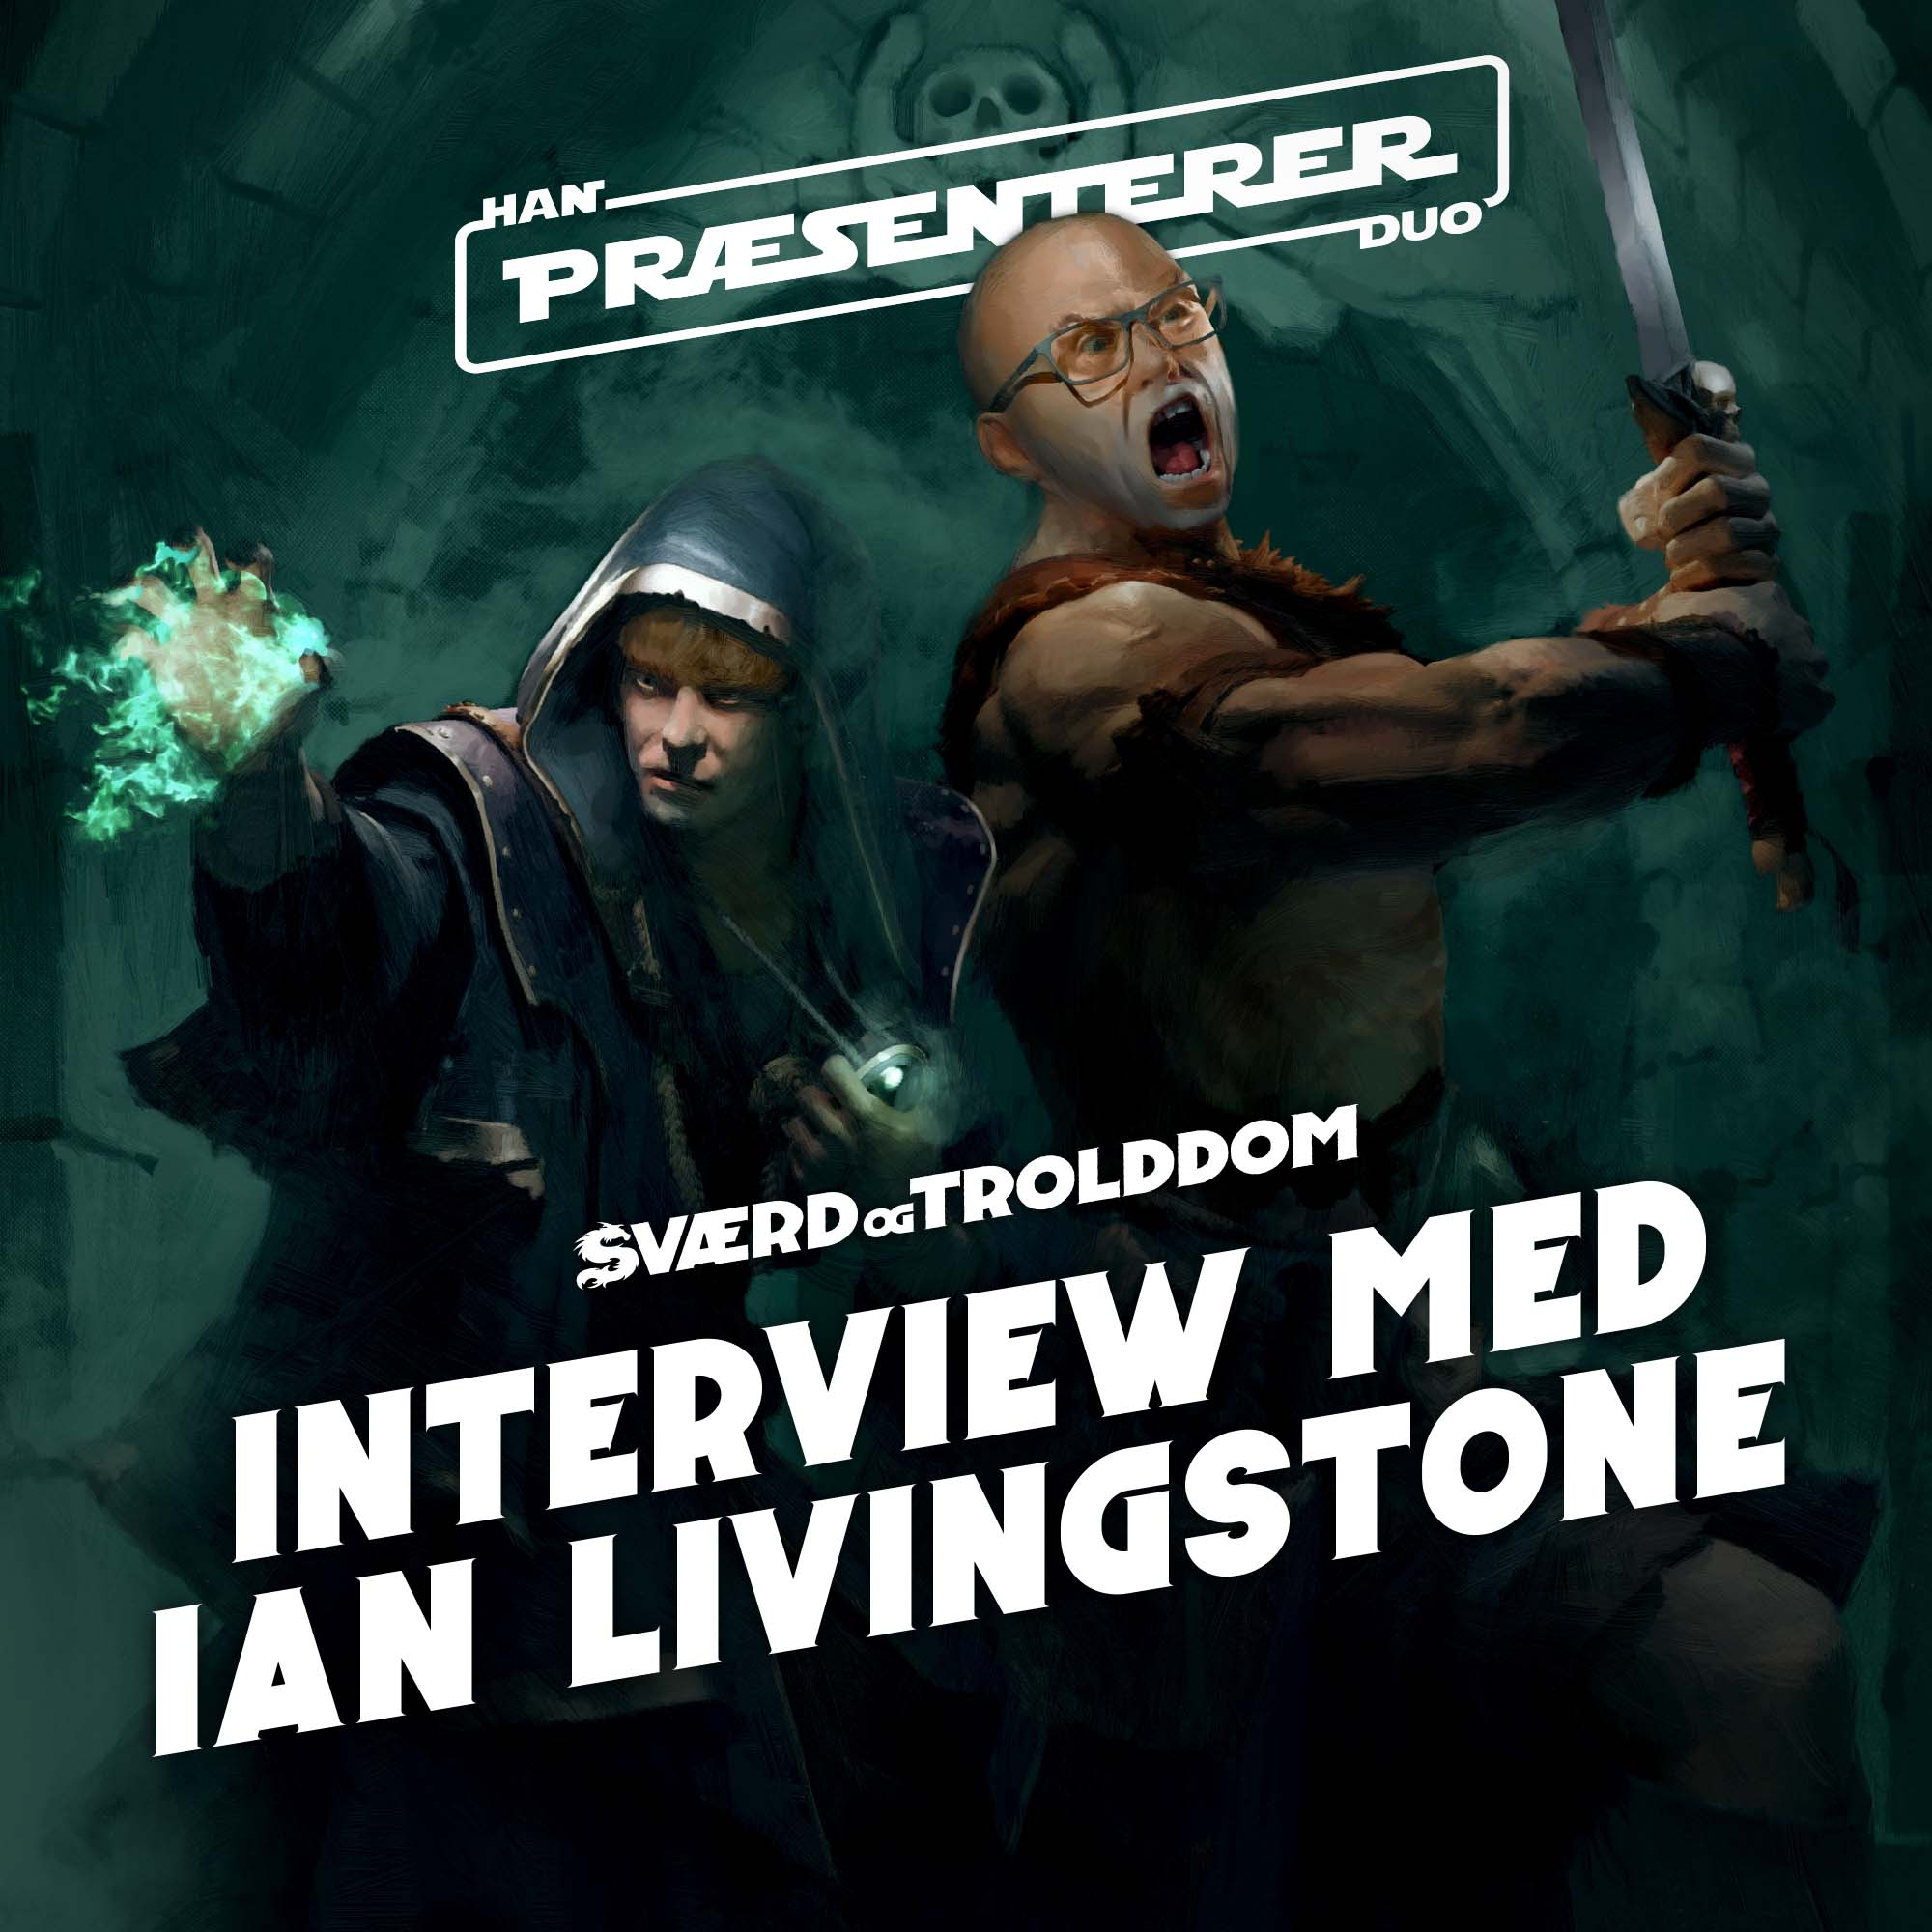 Special: Interview med Ian Livingstone